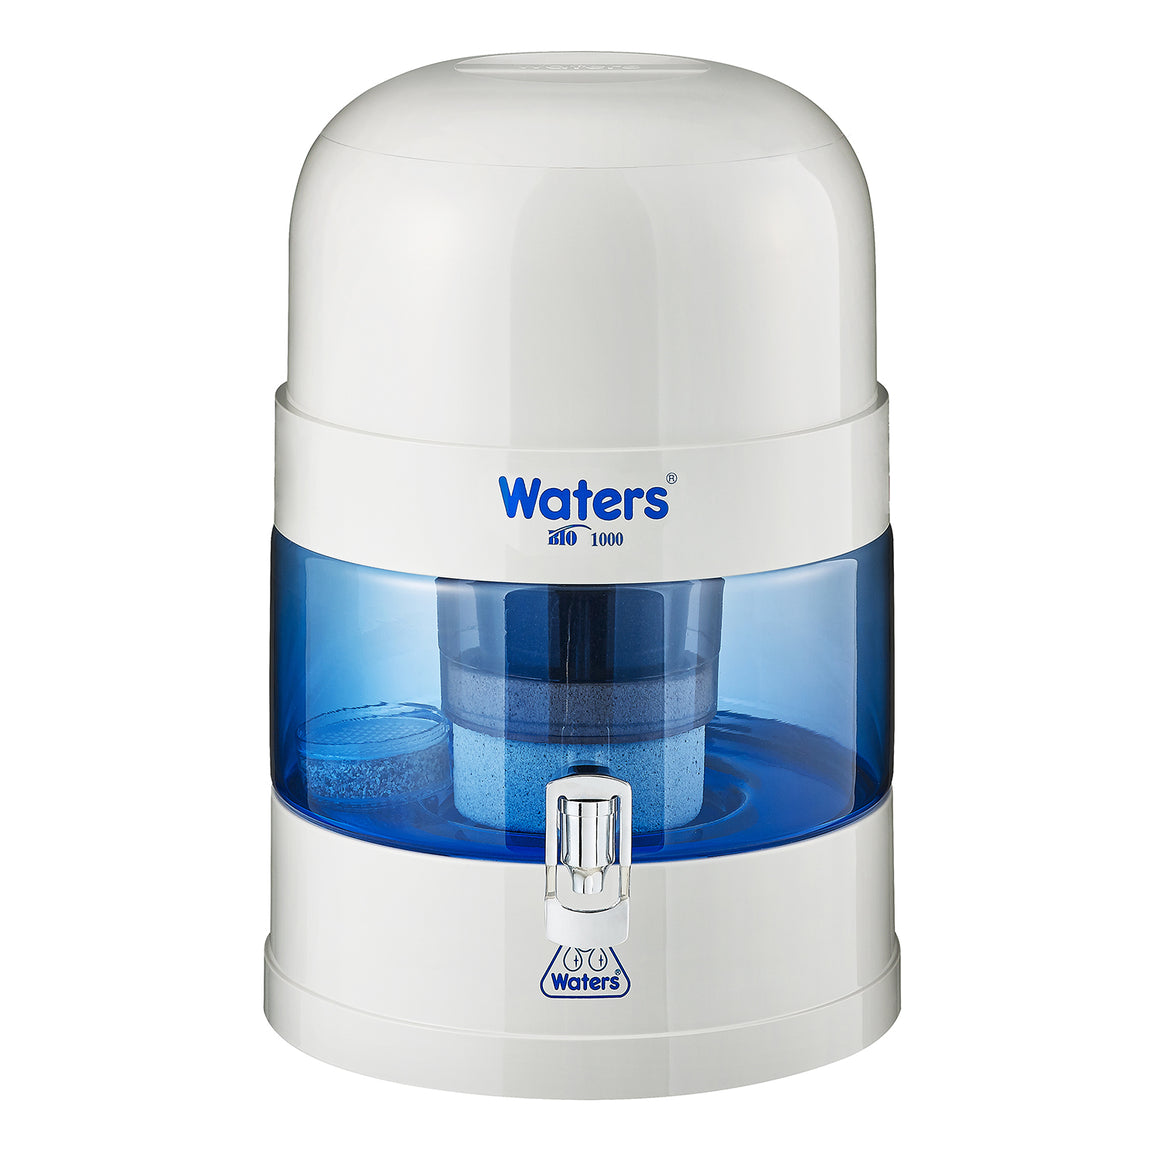 BIO 1000 10 Litre - Waters Co Australia